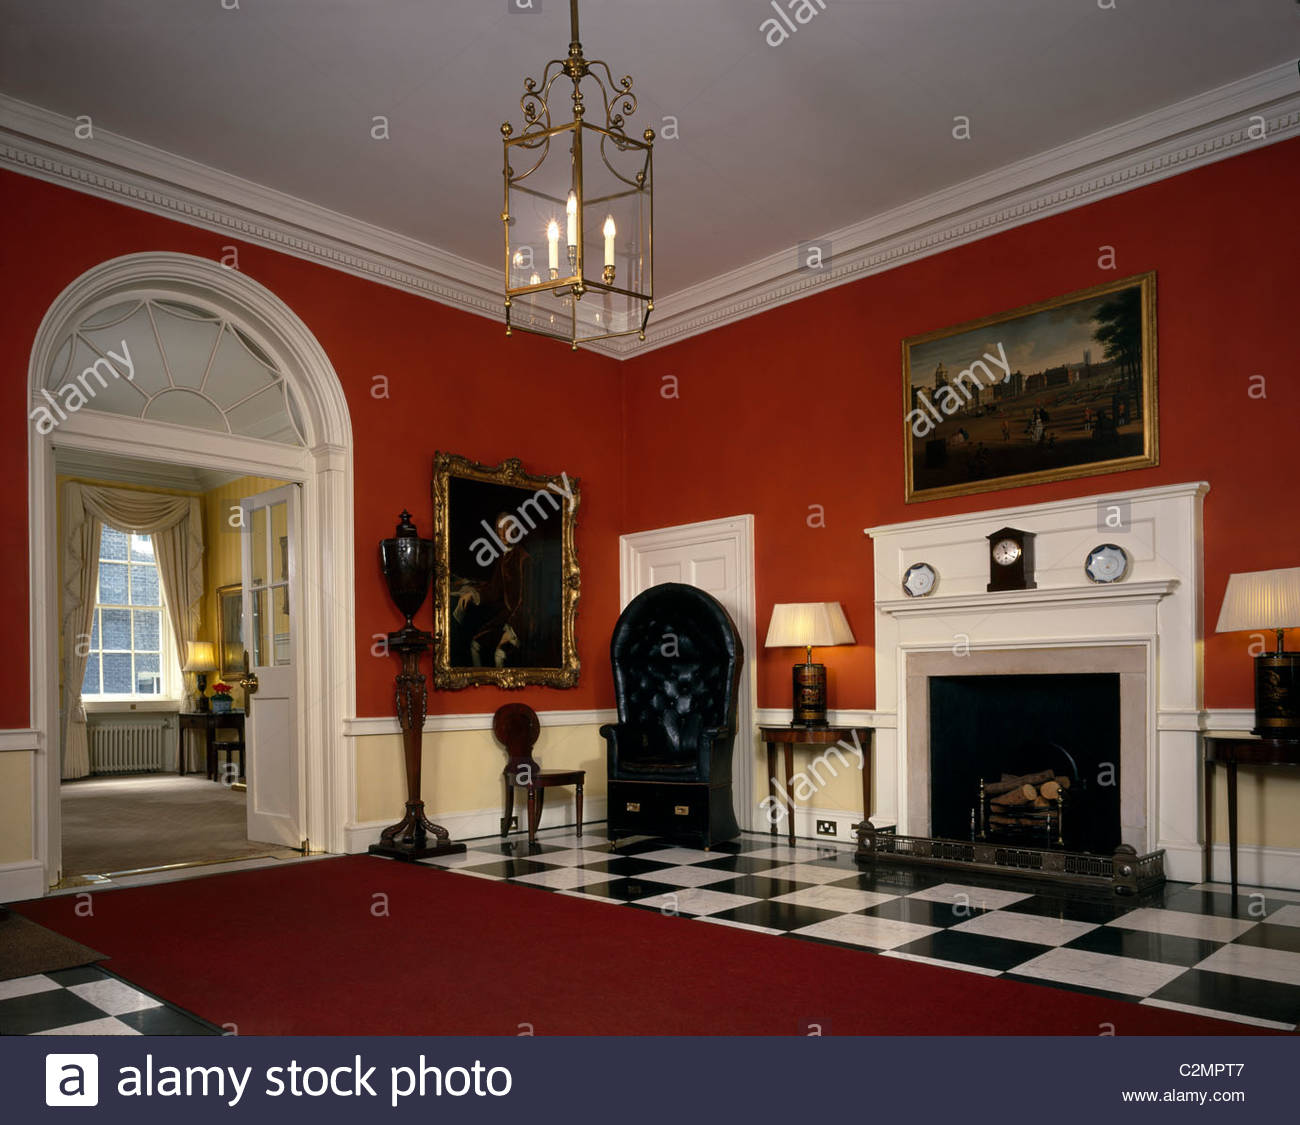 [Image: 10-downing-street-entrance-hall-looking-...C2MPT7.jpg]